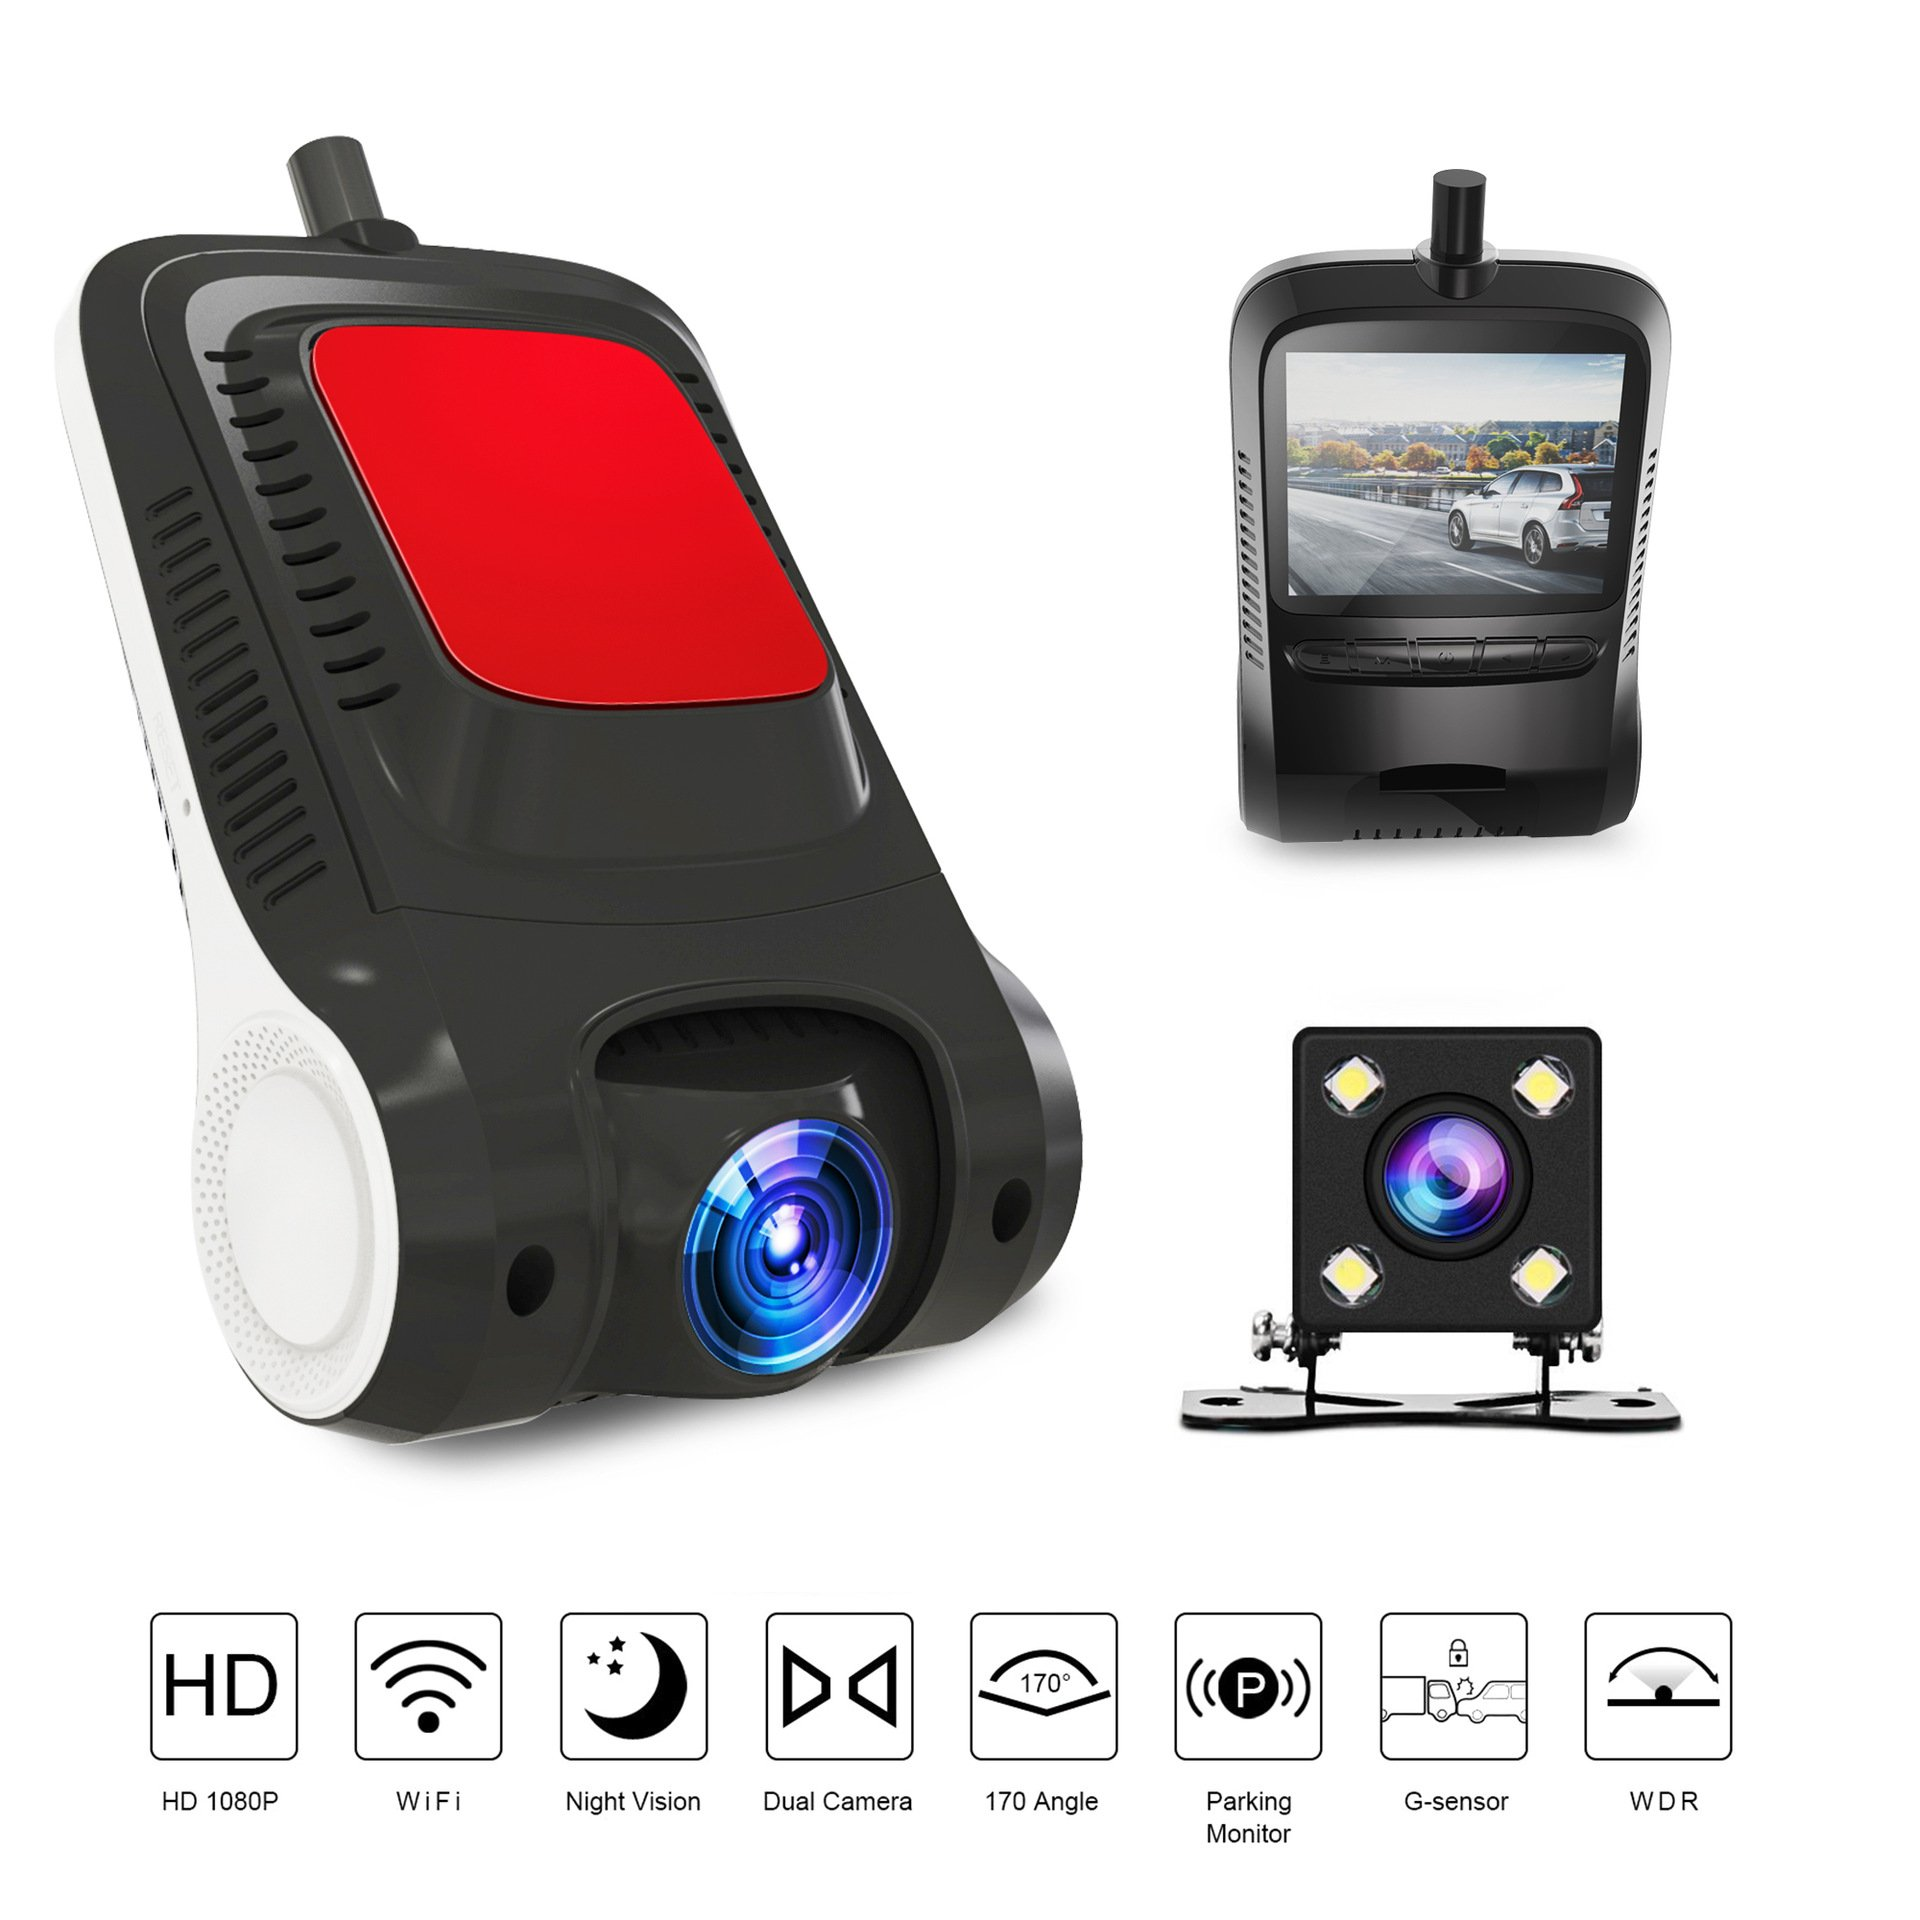 ZYWX Dashcam Full HD 1080P Hidden Camera, 170° Wide-Angle Lens, Dynamic Detection, Parking Monitoring, Loop Recording, Built-in WiFi Module, Night Vision and G Sensor